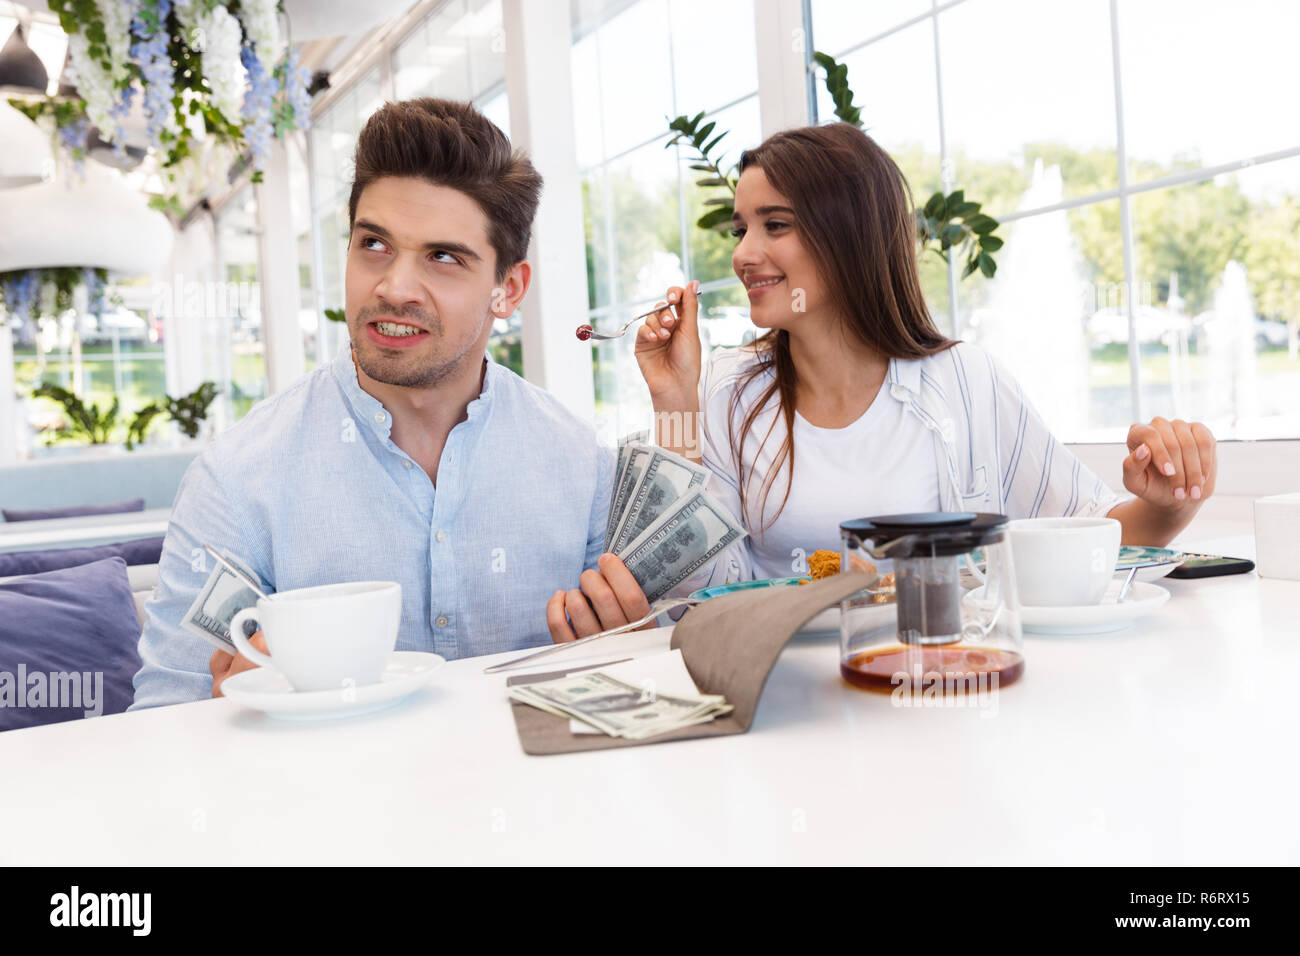 Image of a young displeased confused loving couple sitting in cafe holding check and money. - Stock Image